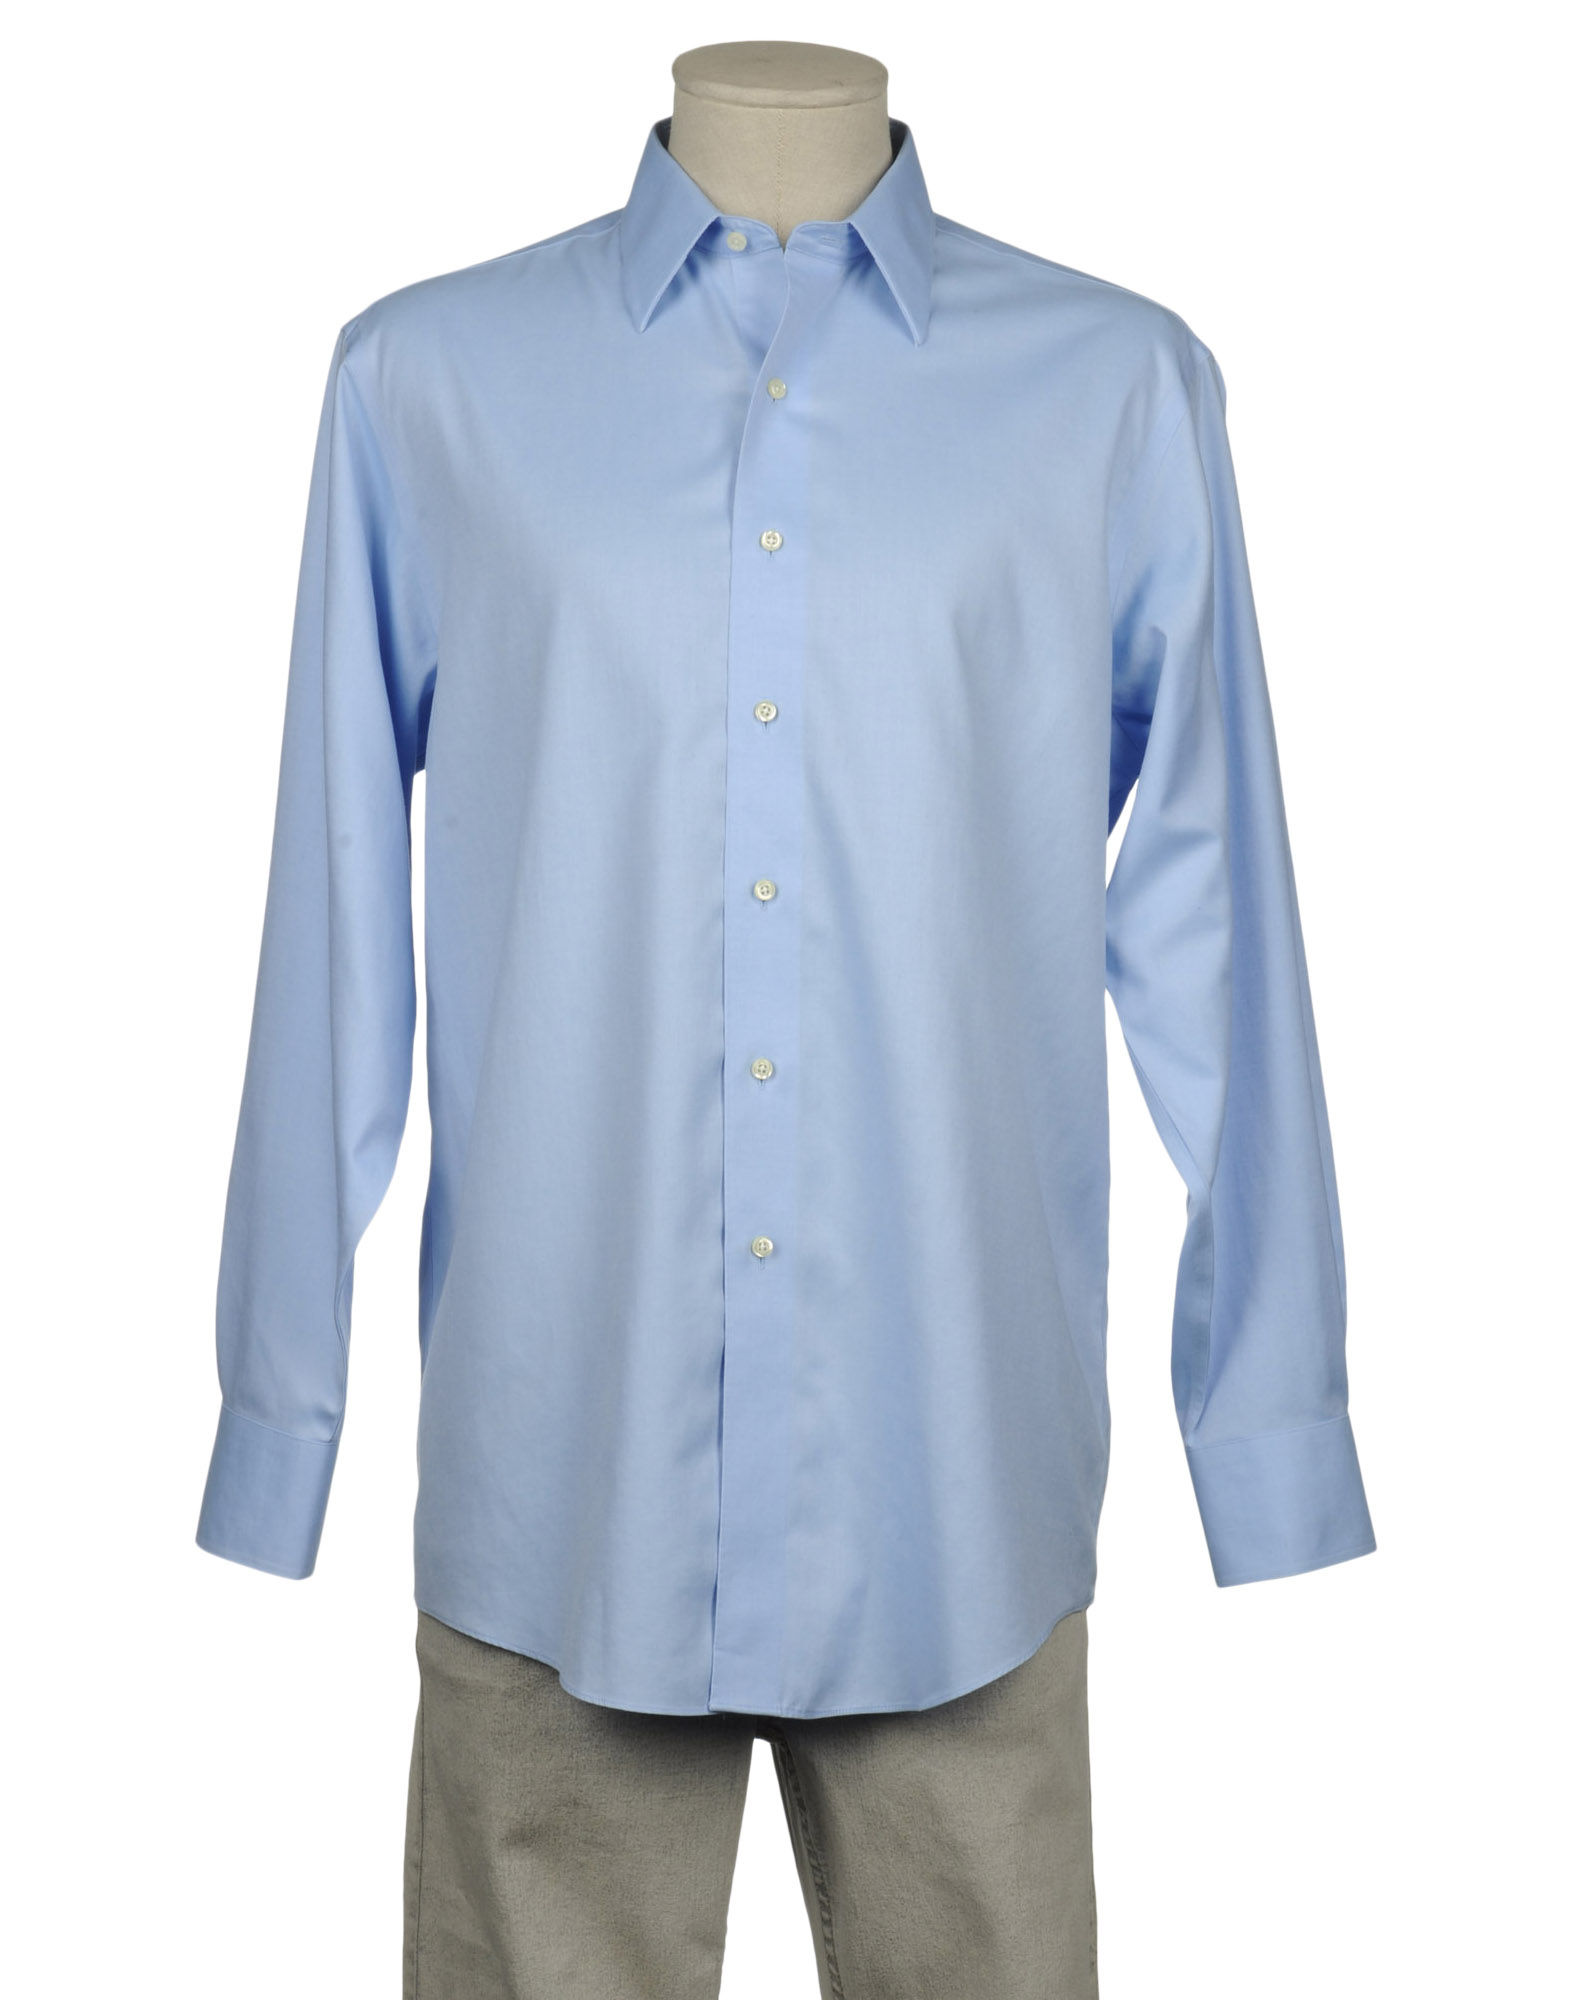 Brooks brothers long sleeve shirt in blue for men lyst for Brooks brothers dress shirt fit guide